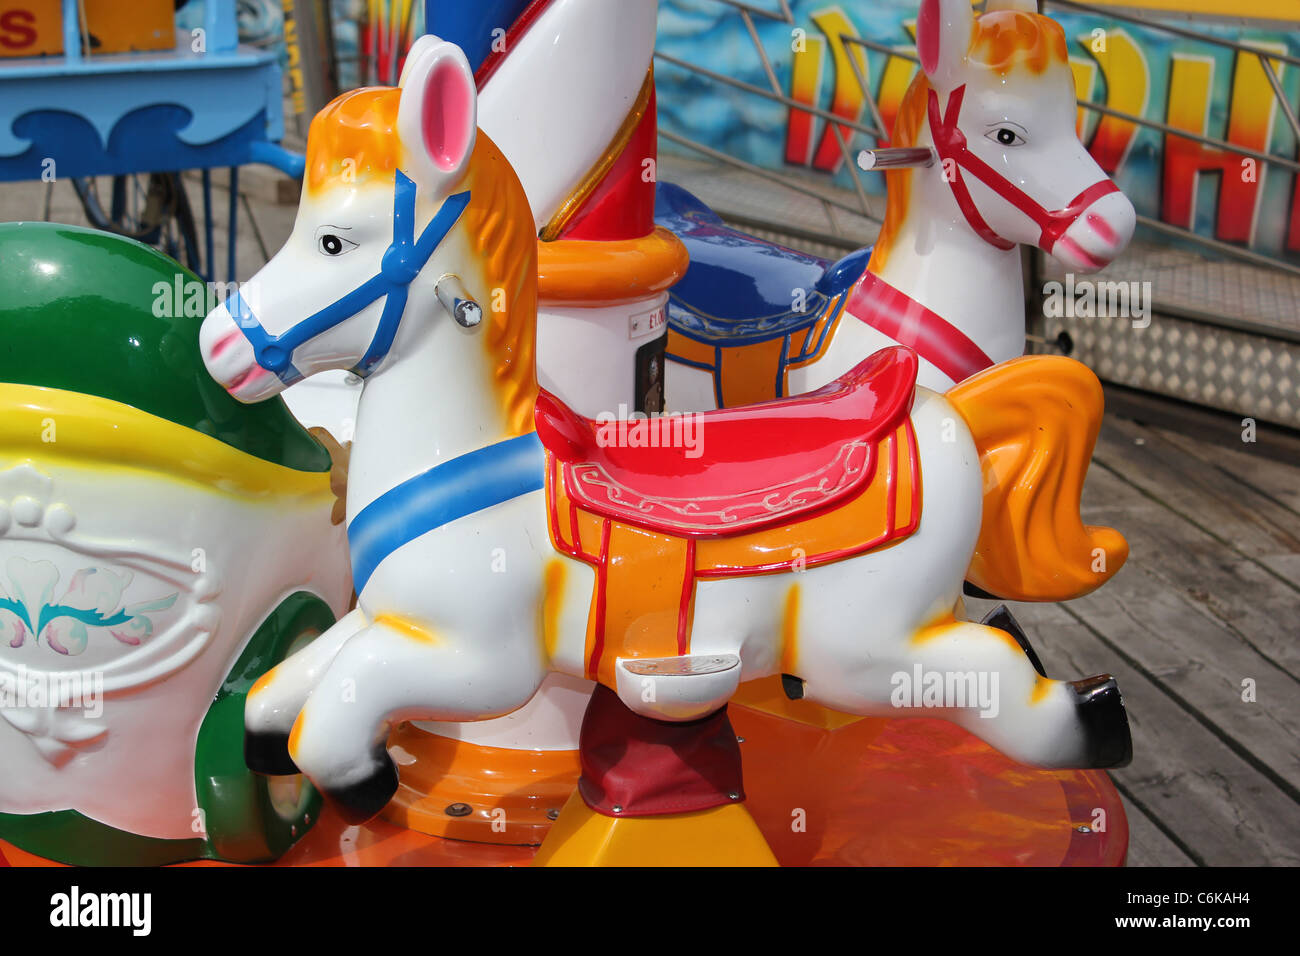 Amusements on Scarborough seafront - Stock Image